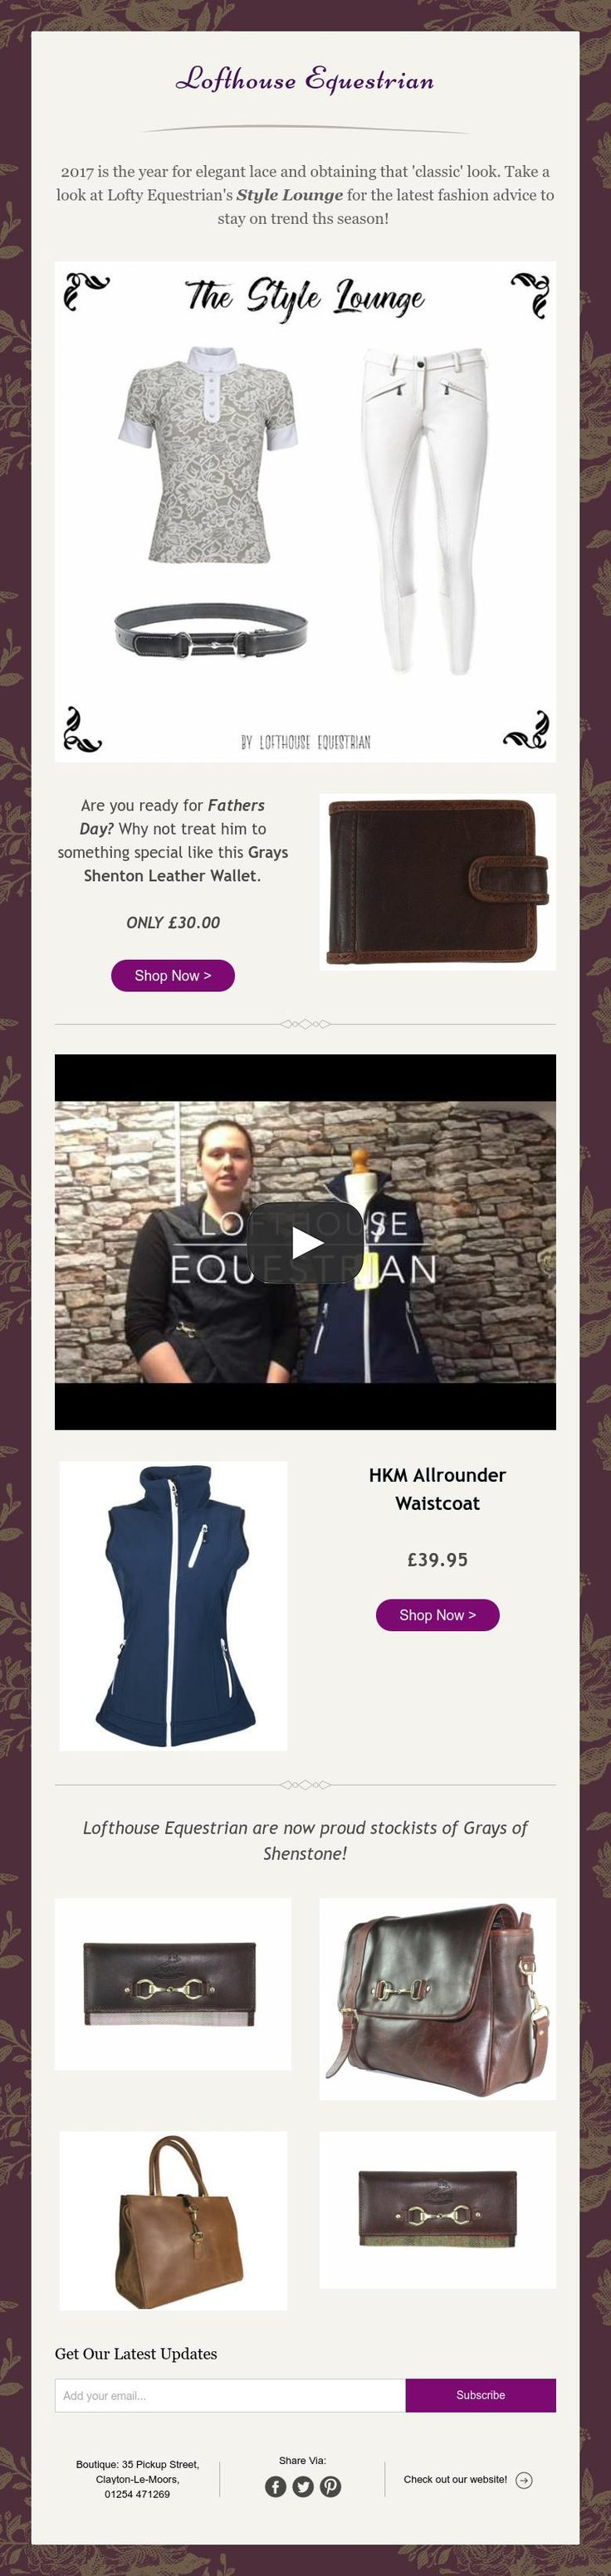 Lofthouse Equestrian, The Style Lounge, Fathers Day Gifts and our latest Lofty Looks at Video!